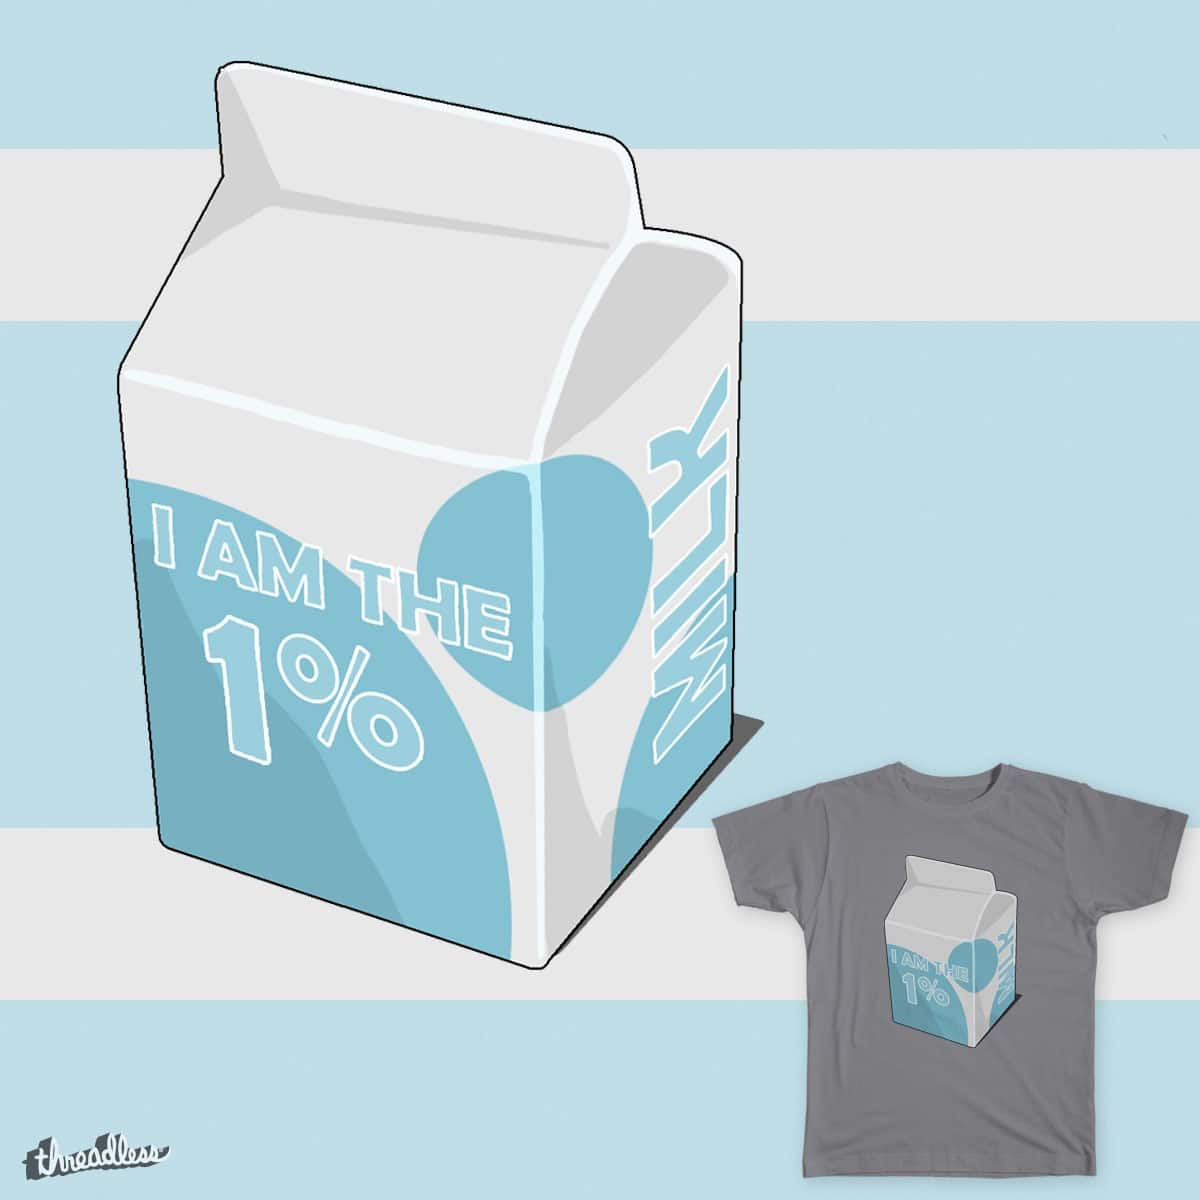 I am the 1% (Milk) by konokou on Threadless